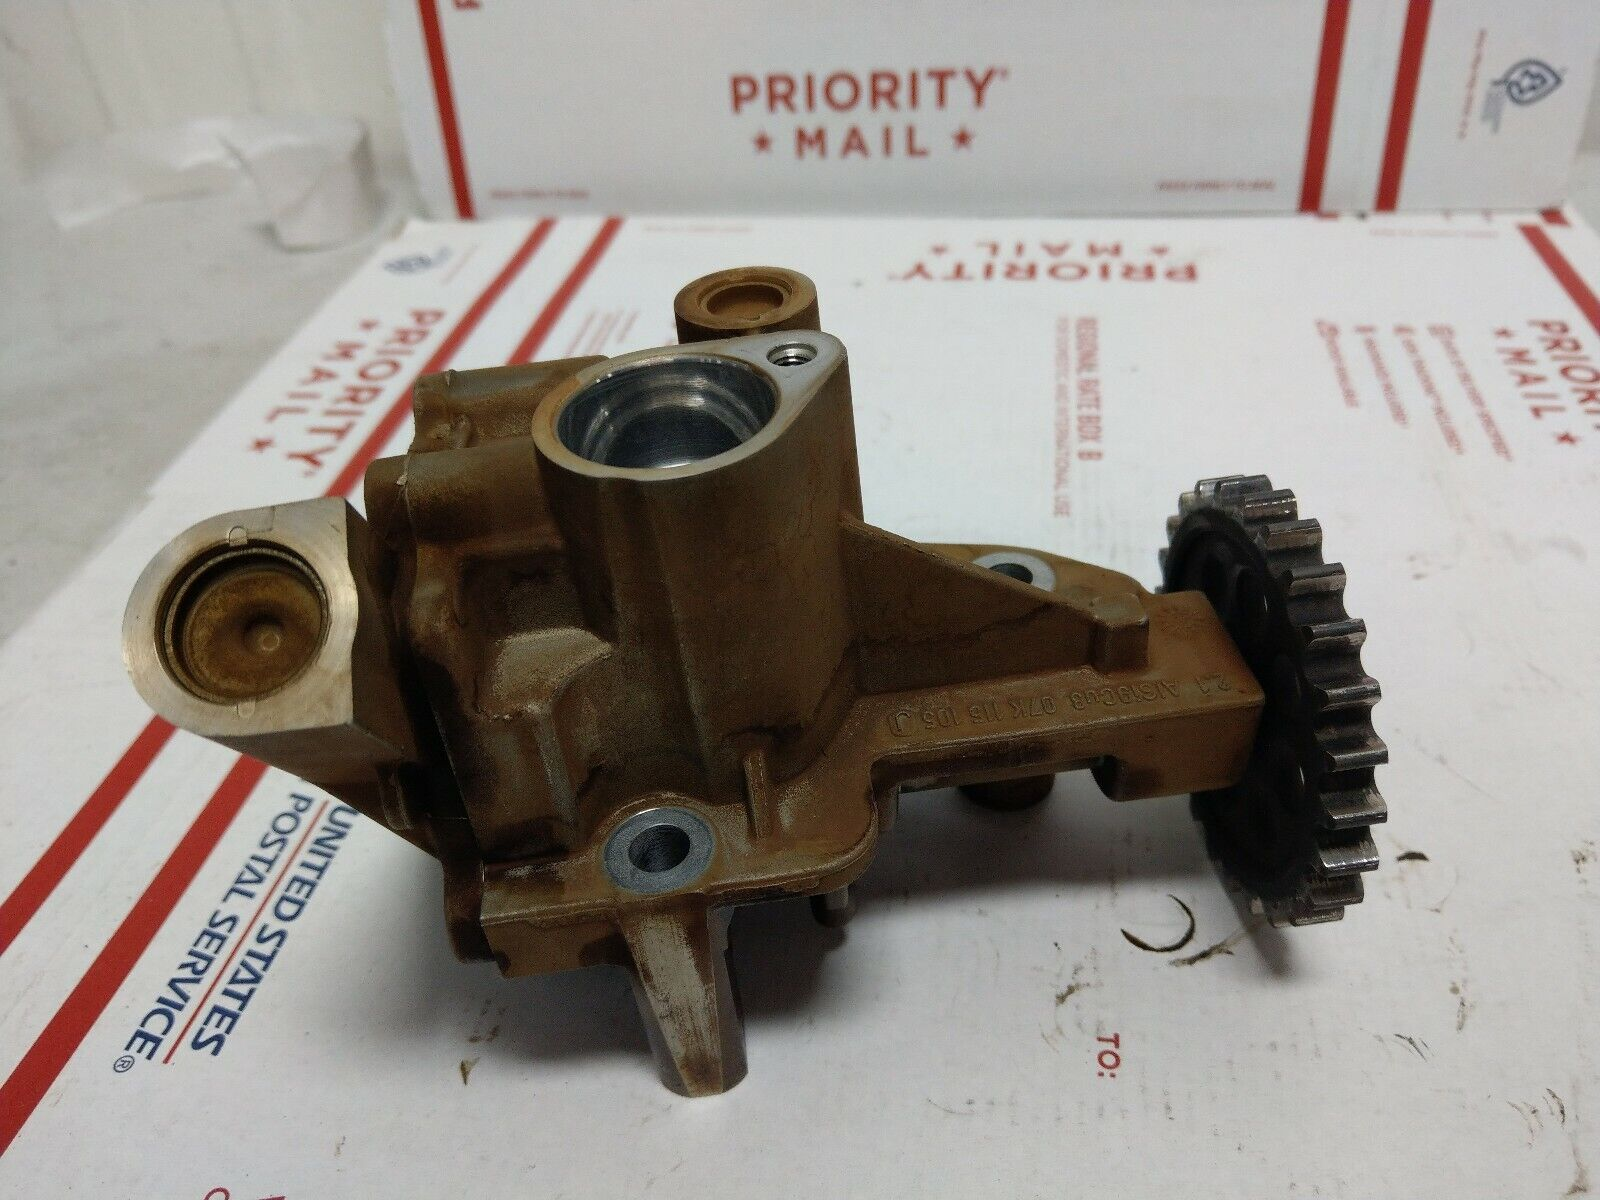 Used Volkswagen Oil Pumps for Sale - Page 4